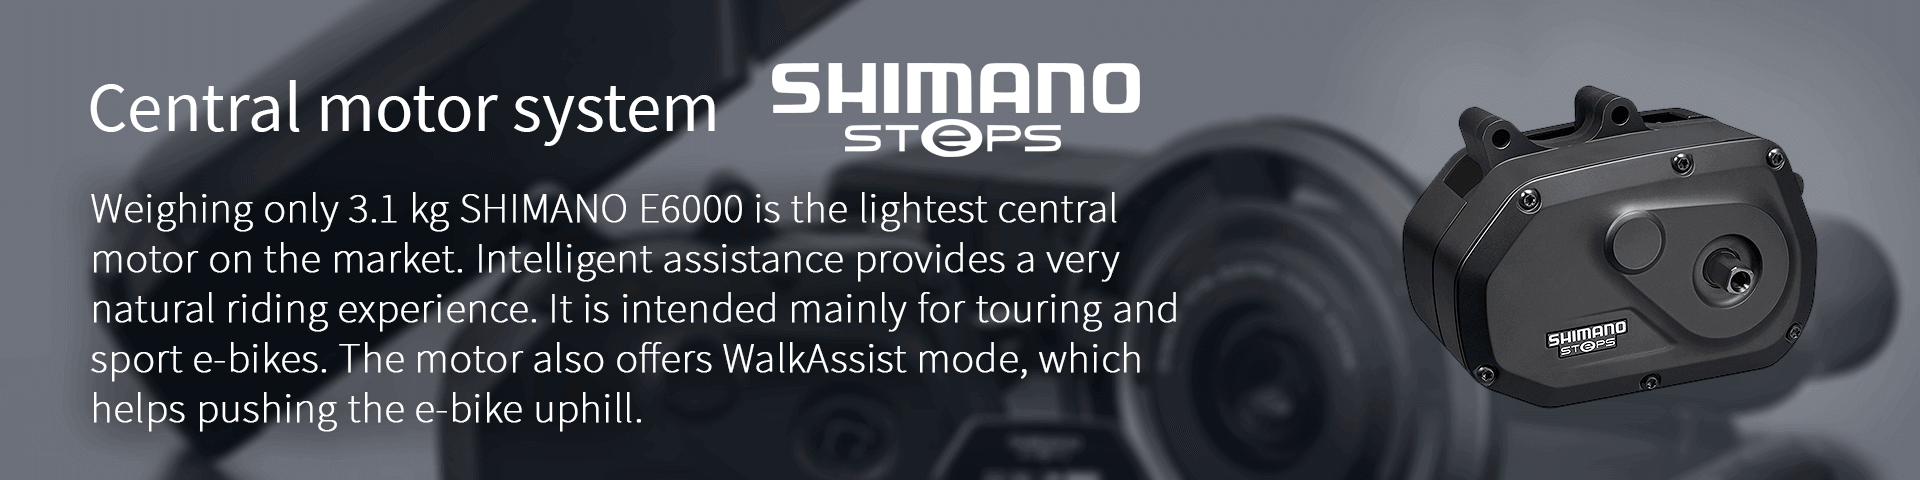 Weighing only 3.1 kg SHIMANO E6000 is the lightest central  motor on the market. Intelligent assistance provides a very  natural riding experience. It is intended mainly for touring and  sport e-bikes. The motor also offers WalkAssist mode, which  helps pushing the e-bike uphill.